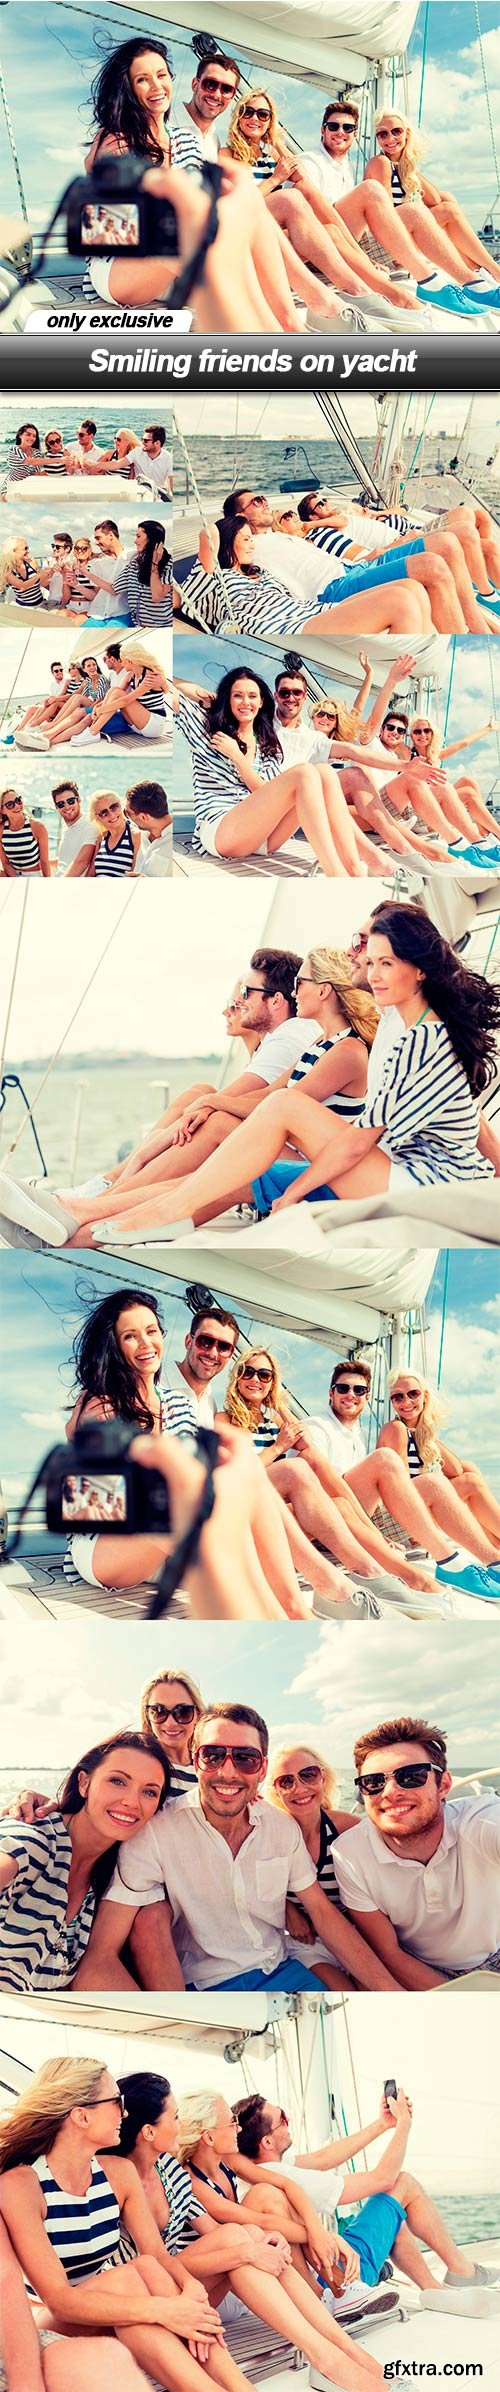 Smiling friends on yacht - 10 UHQ JPEG